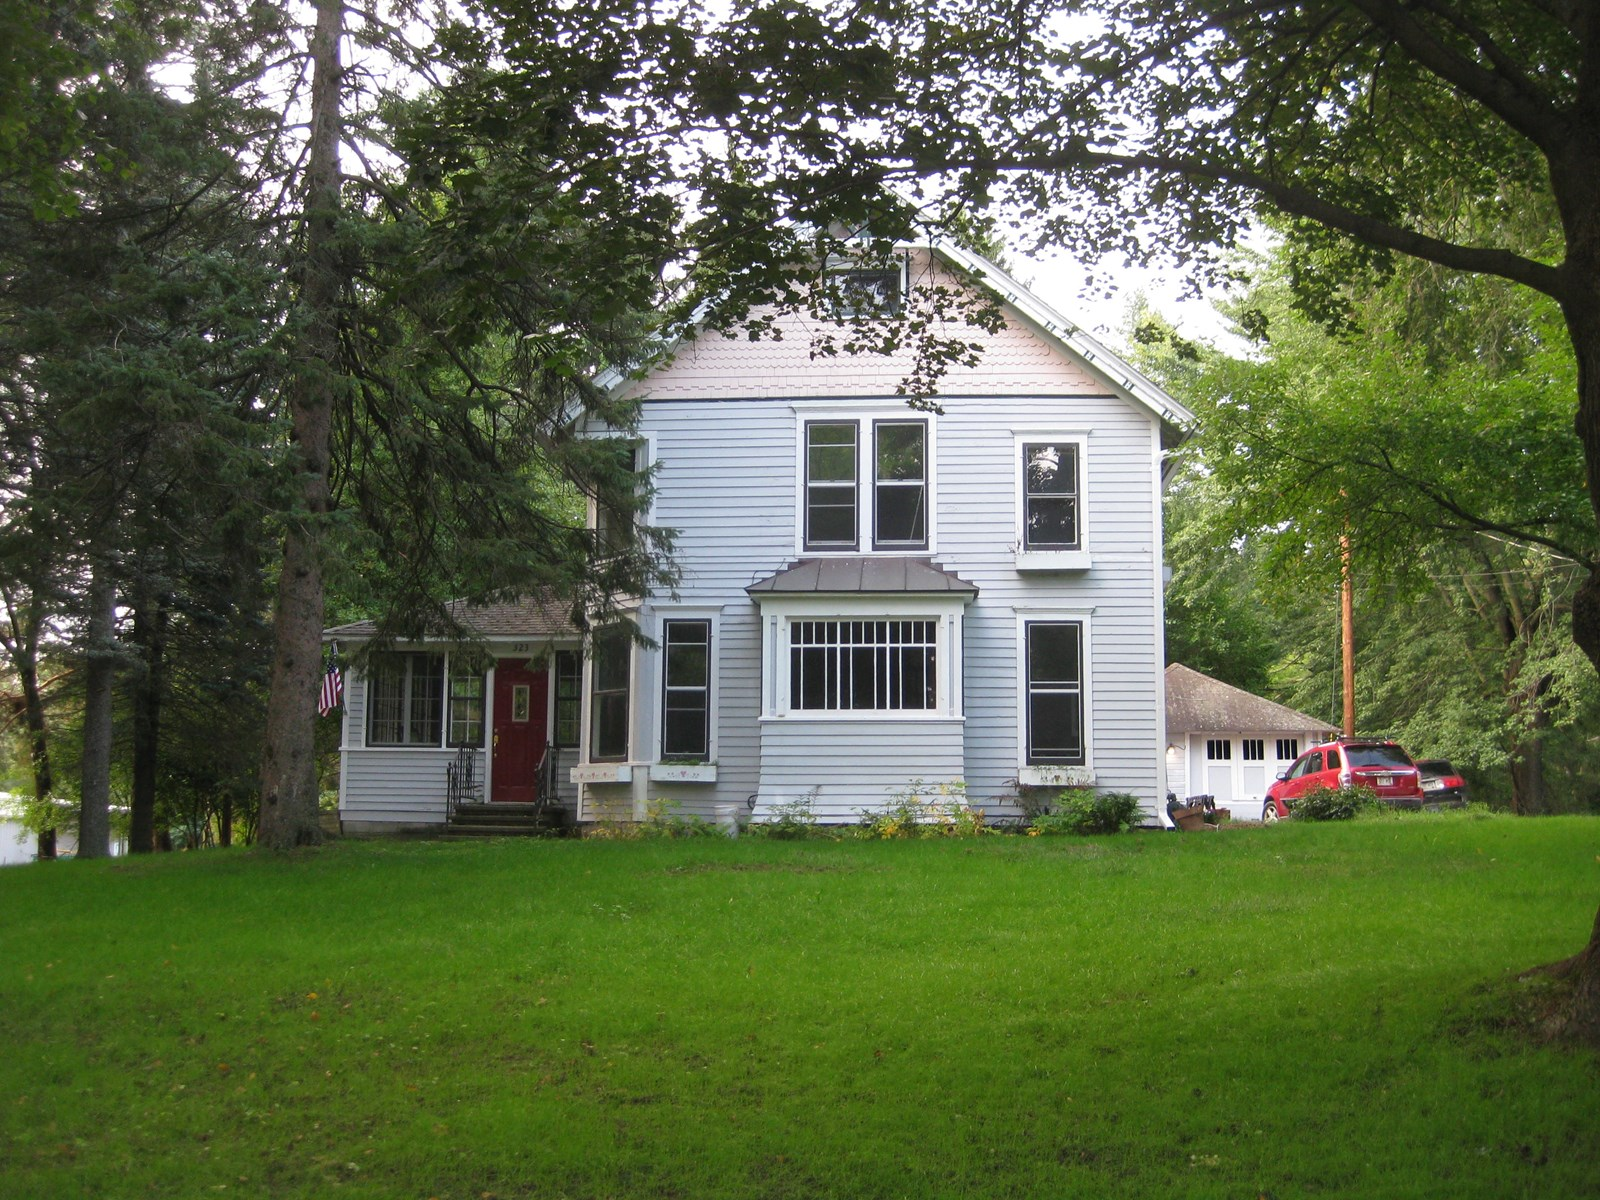 Historic Home for Sale in the City of Waupaca